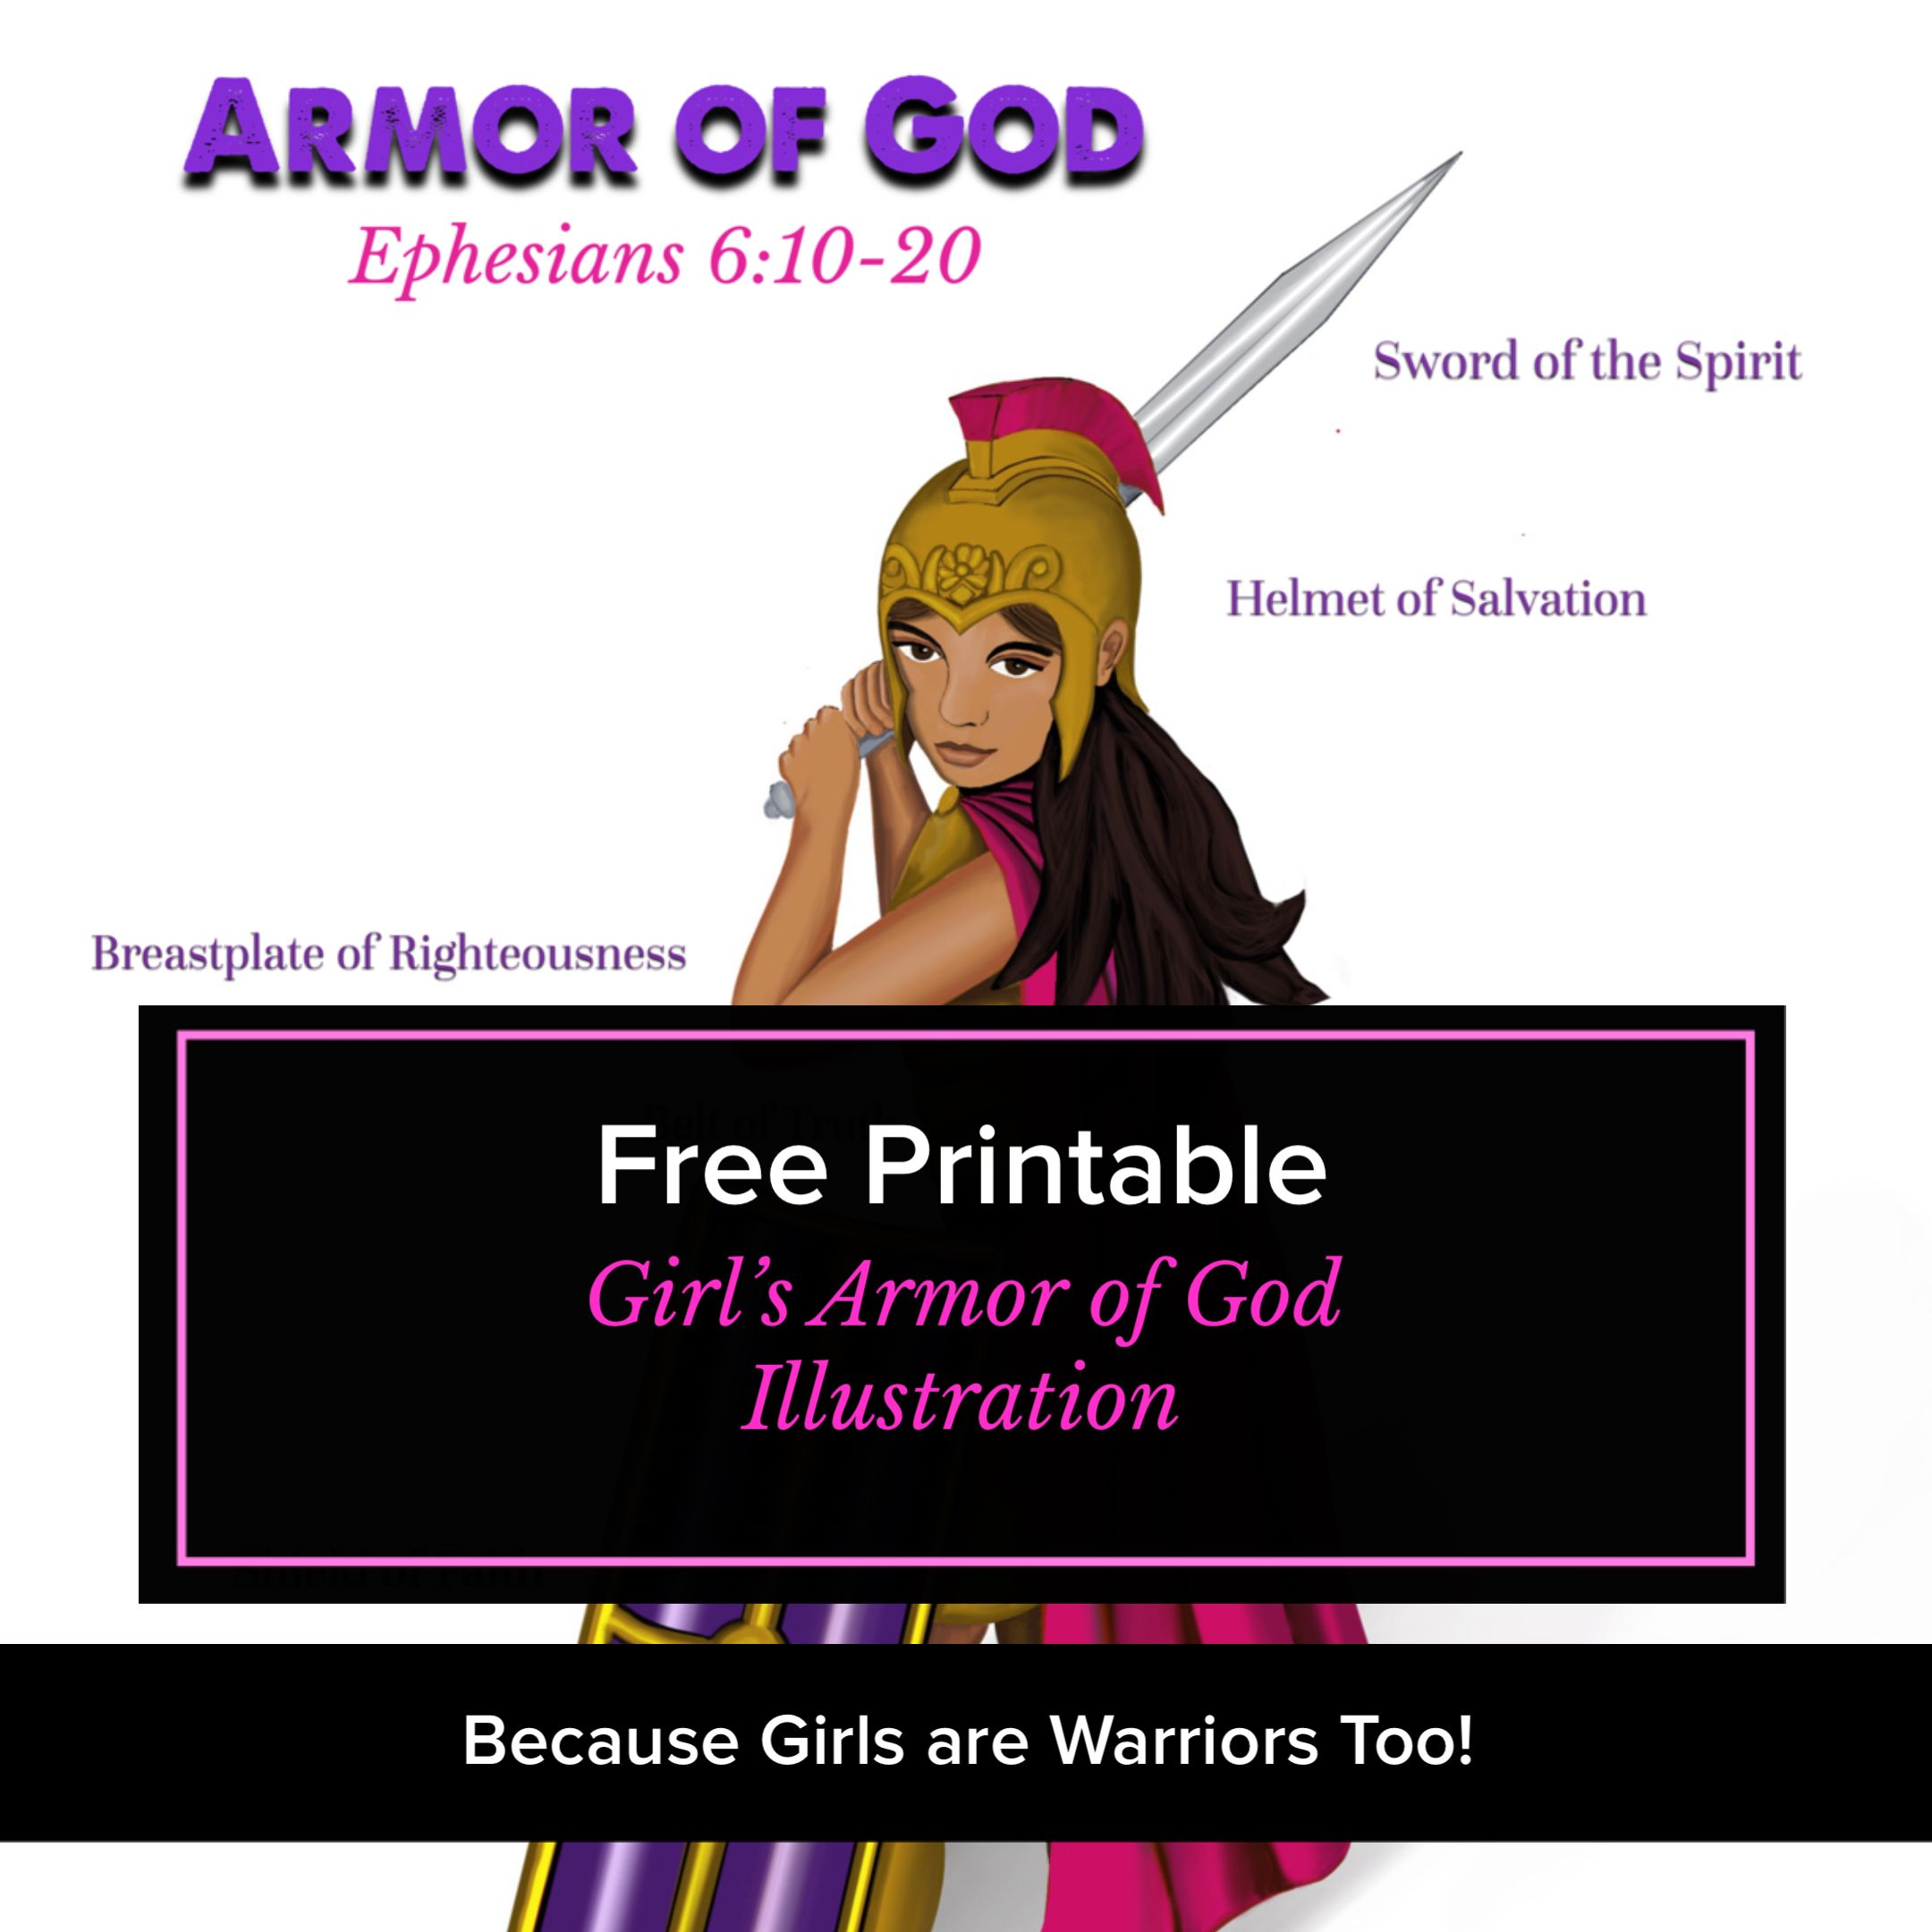 Because Girls Are Warriors Too Fruitfully Living Girls